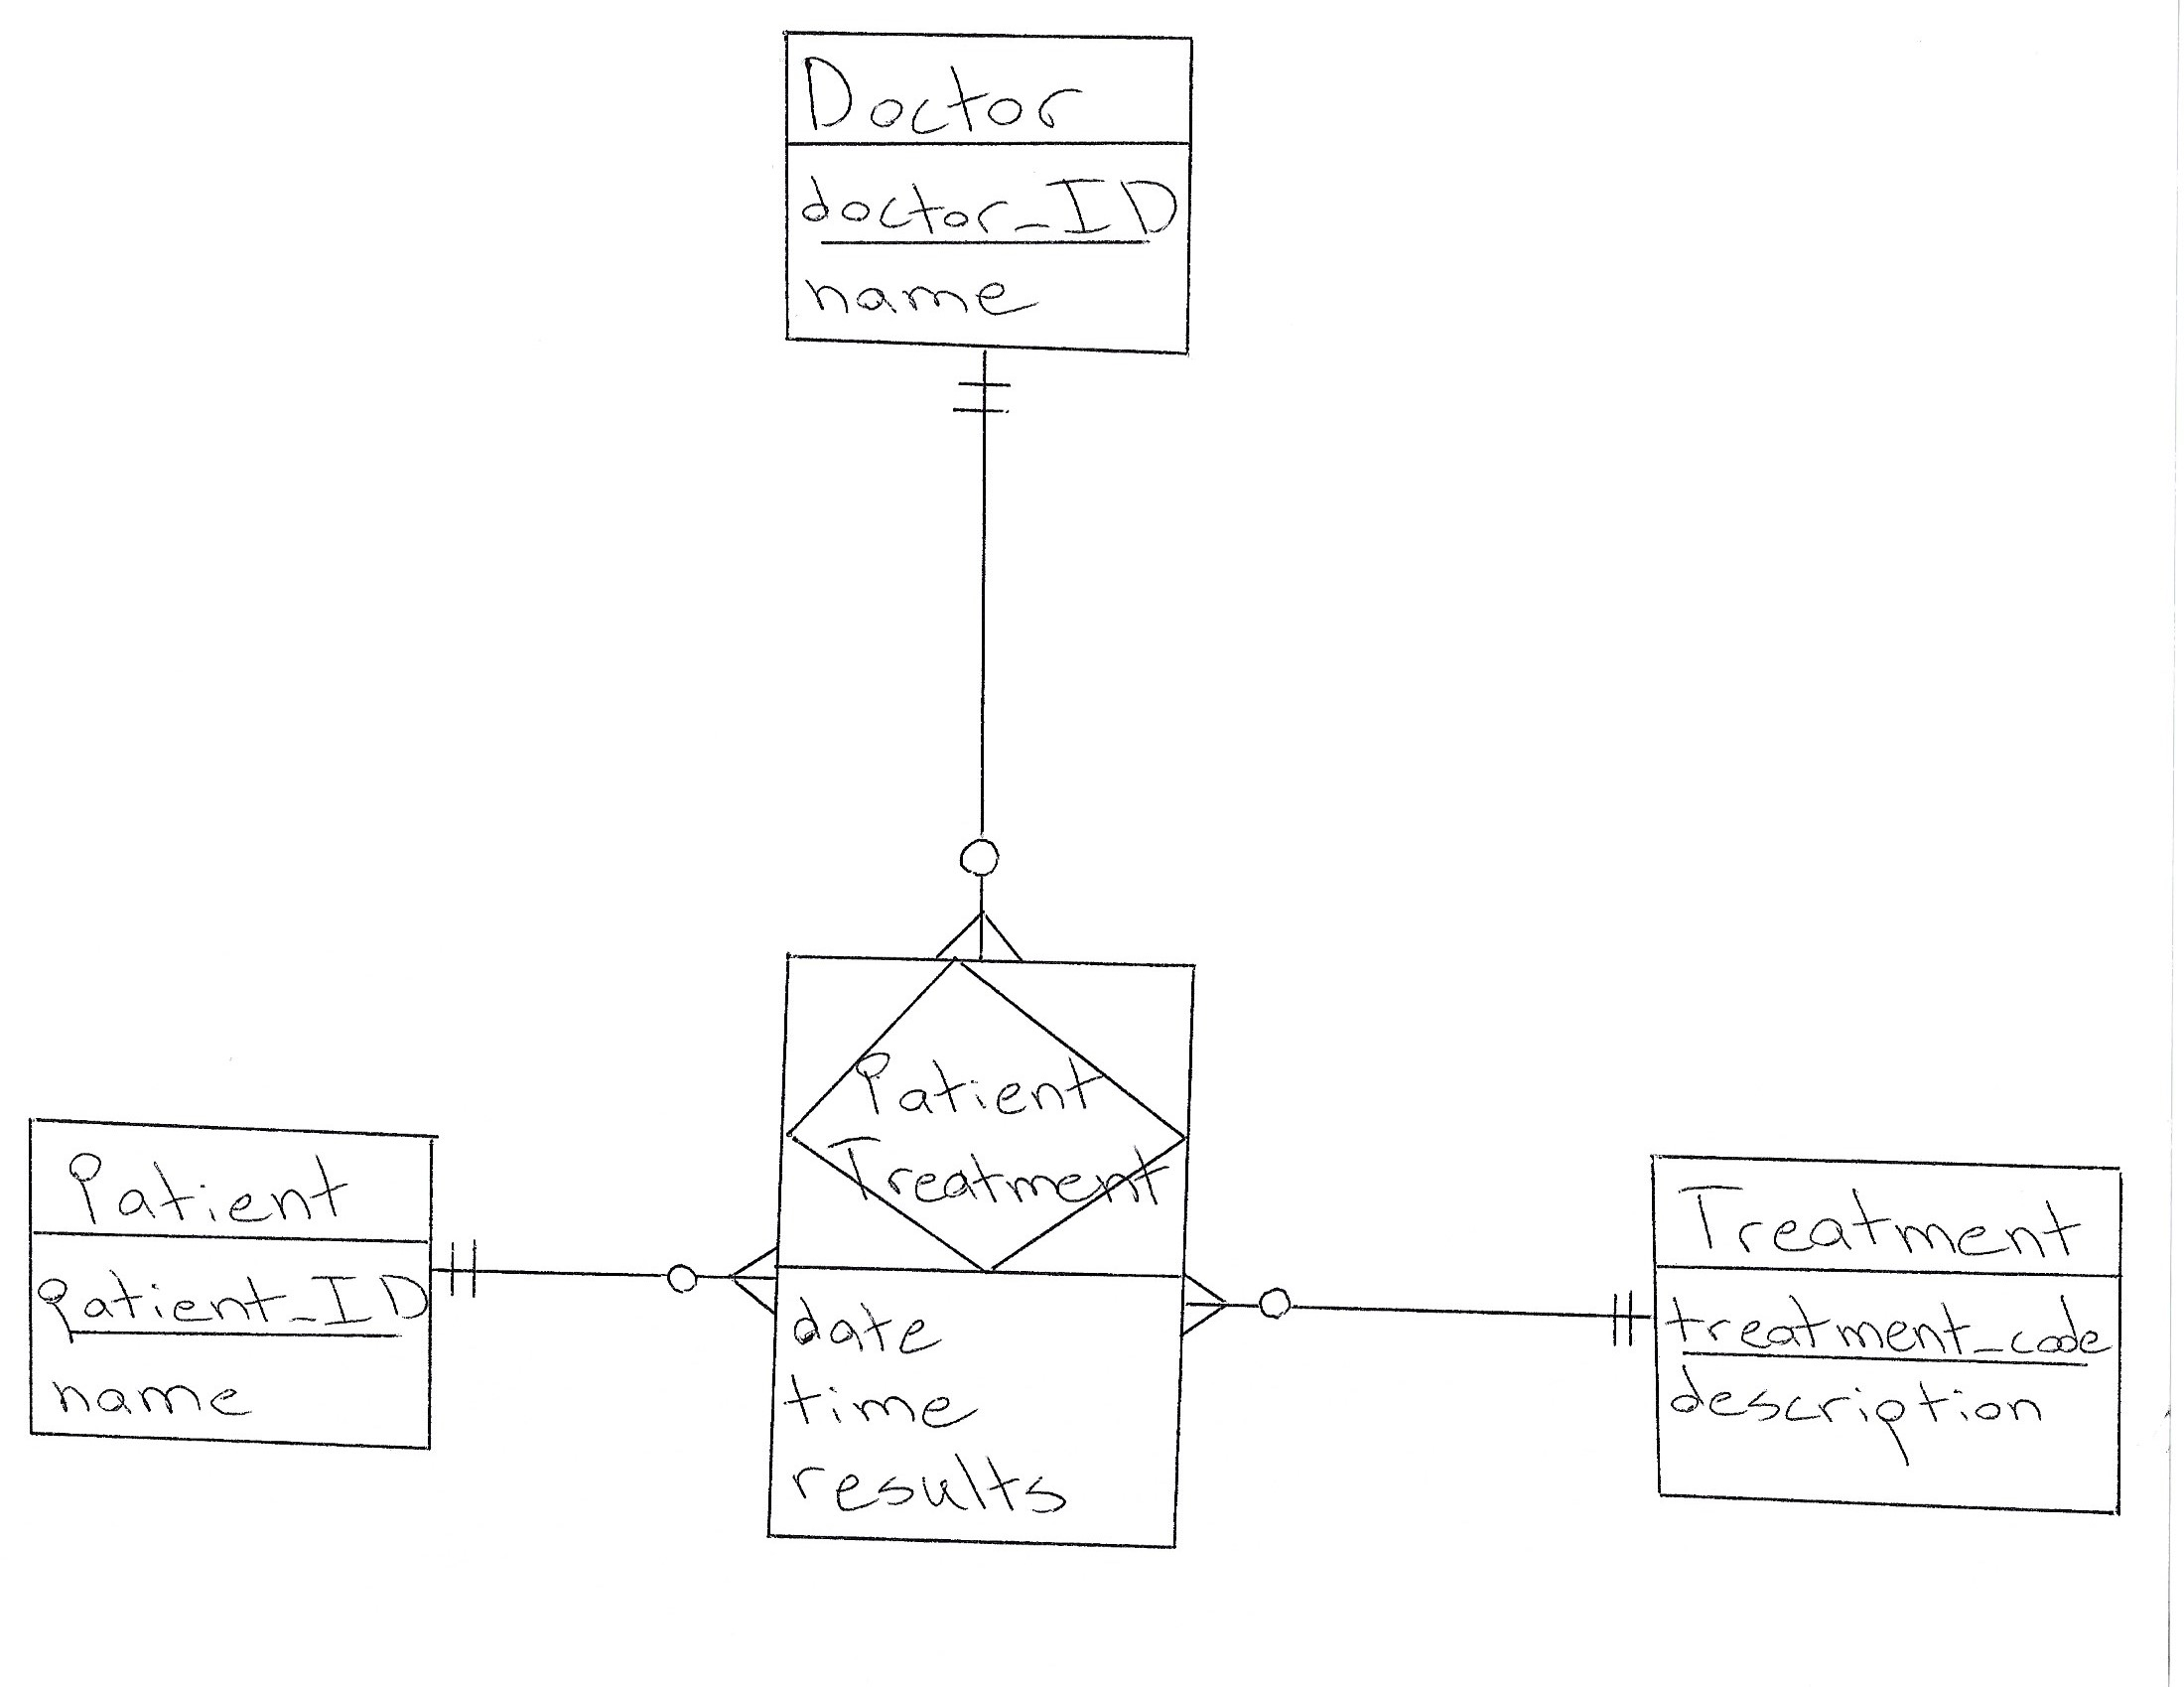 Database Design: How To Design A Database